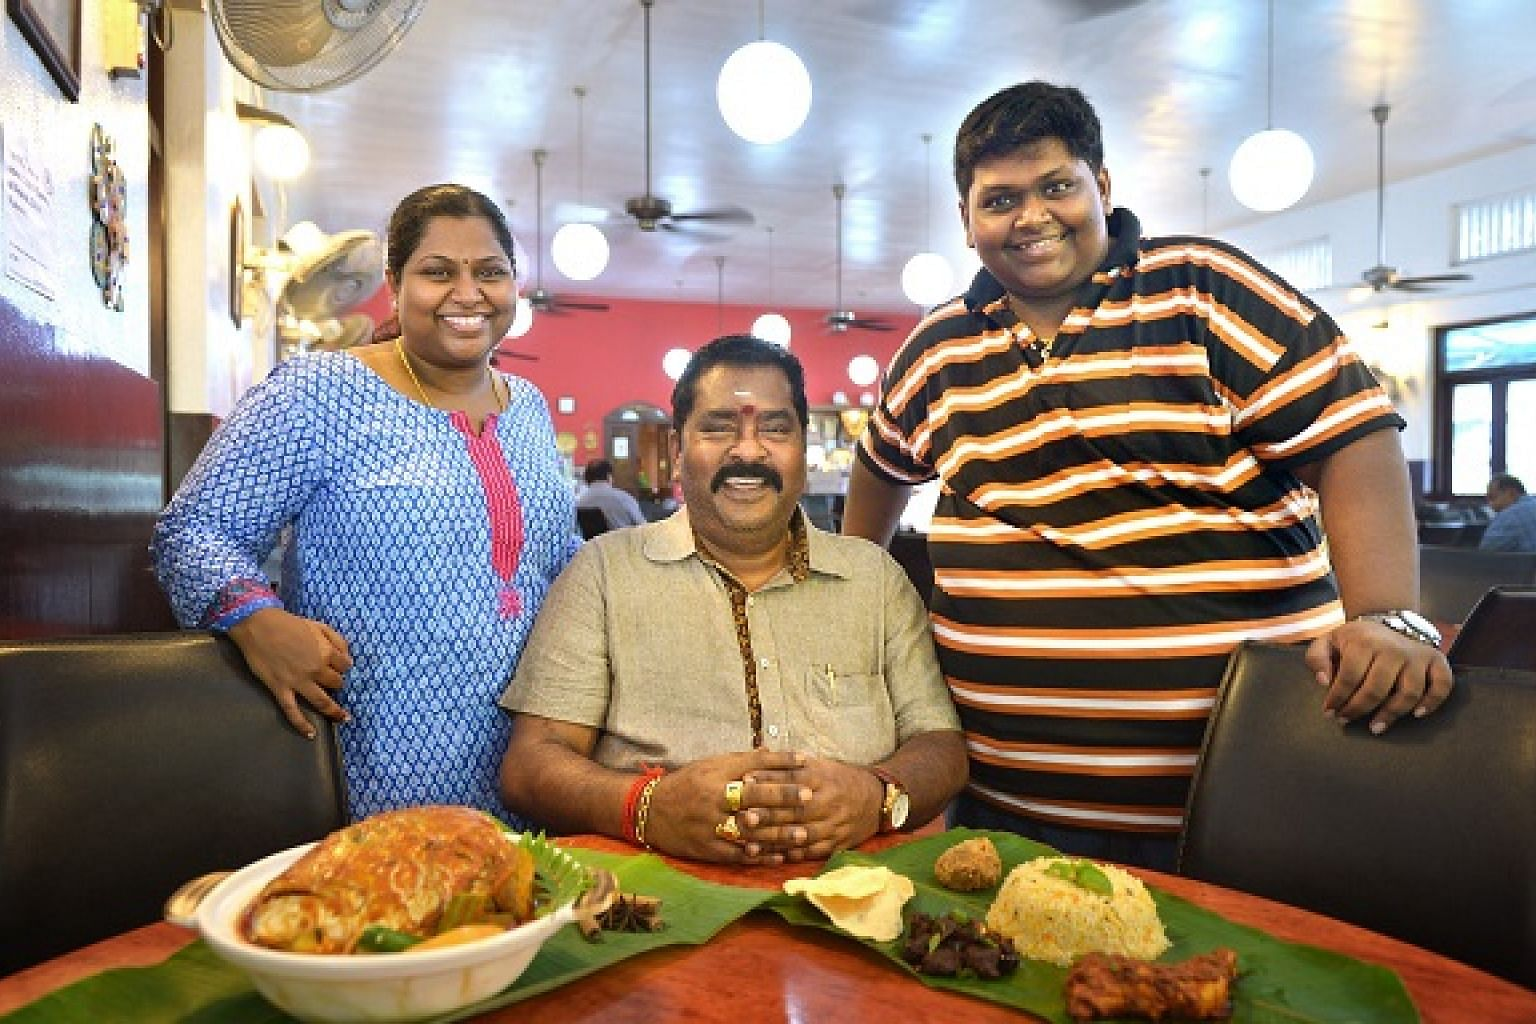 Mr V Maheyndran (centre) with his daughter Nagajyothi Mahendran and son M Veerasamy, who both run Samy's Curry.